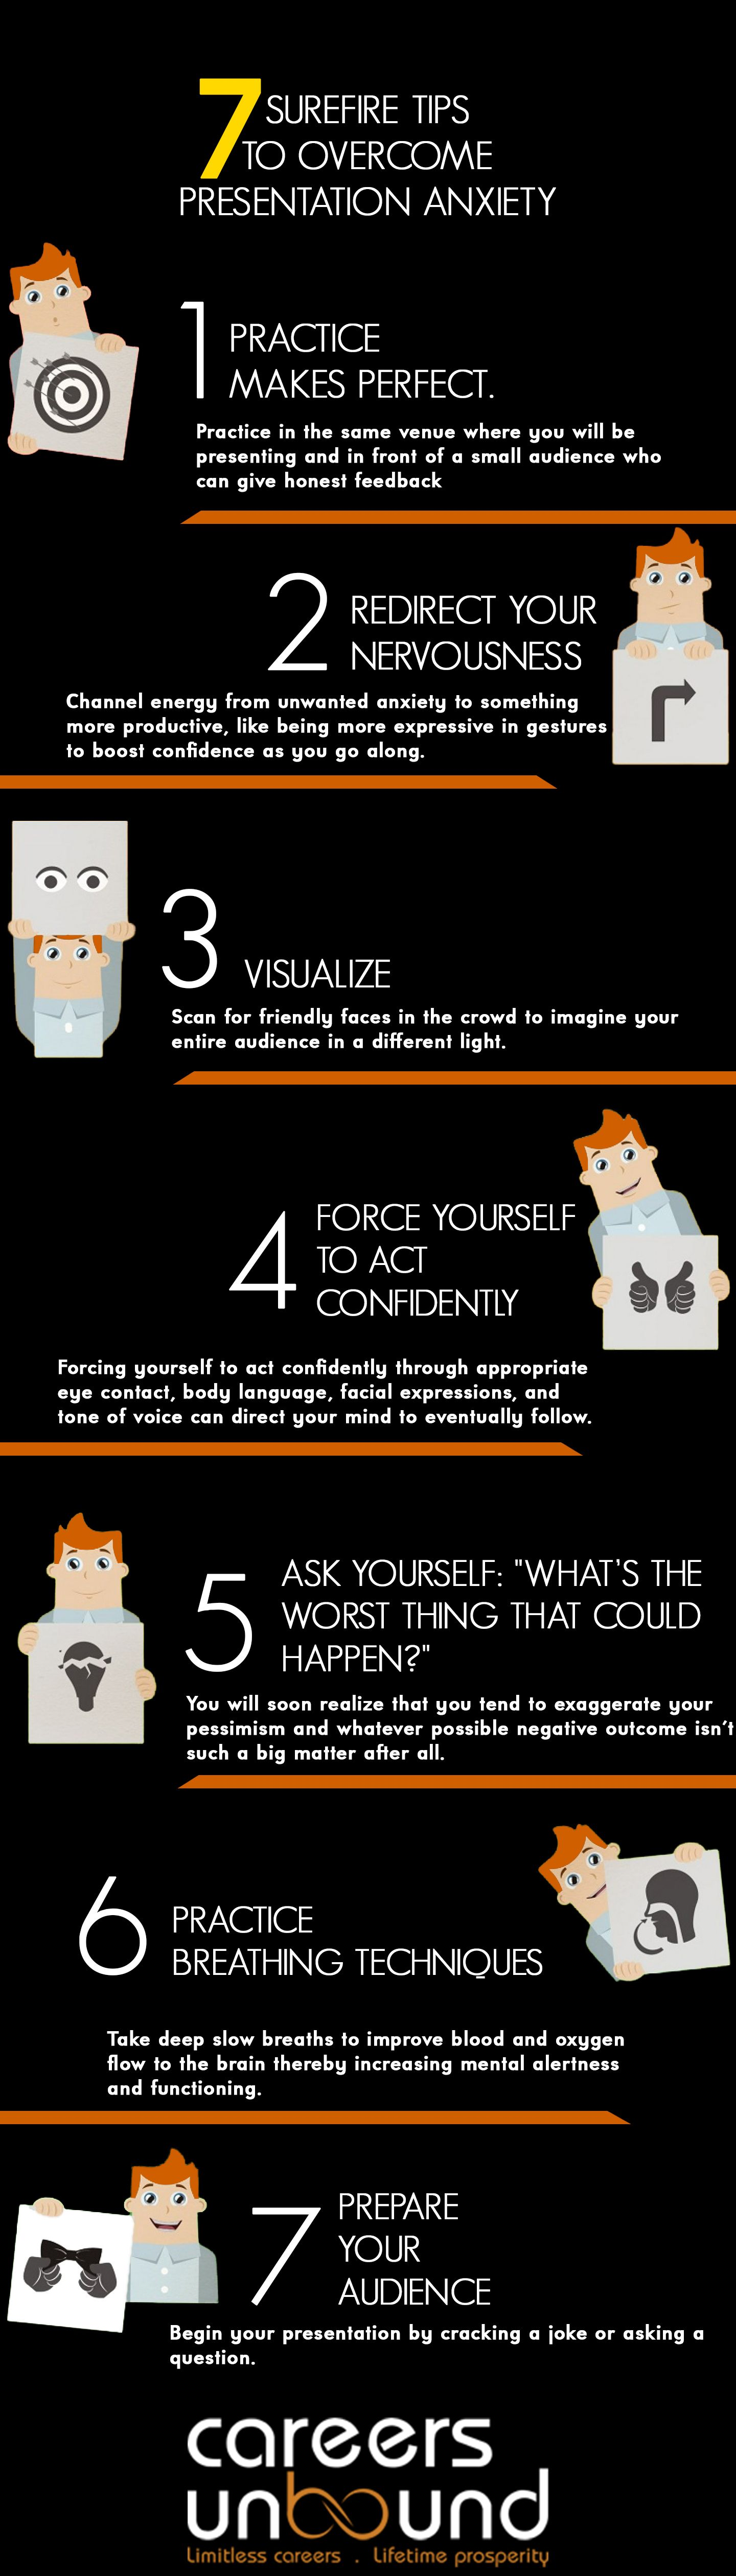 How To Improve Your Presentation Skills?